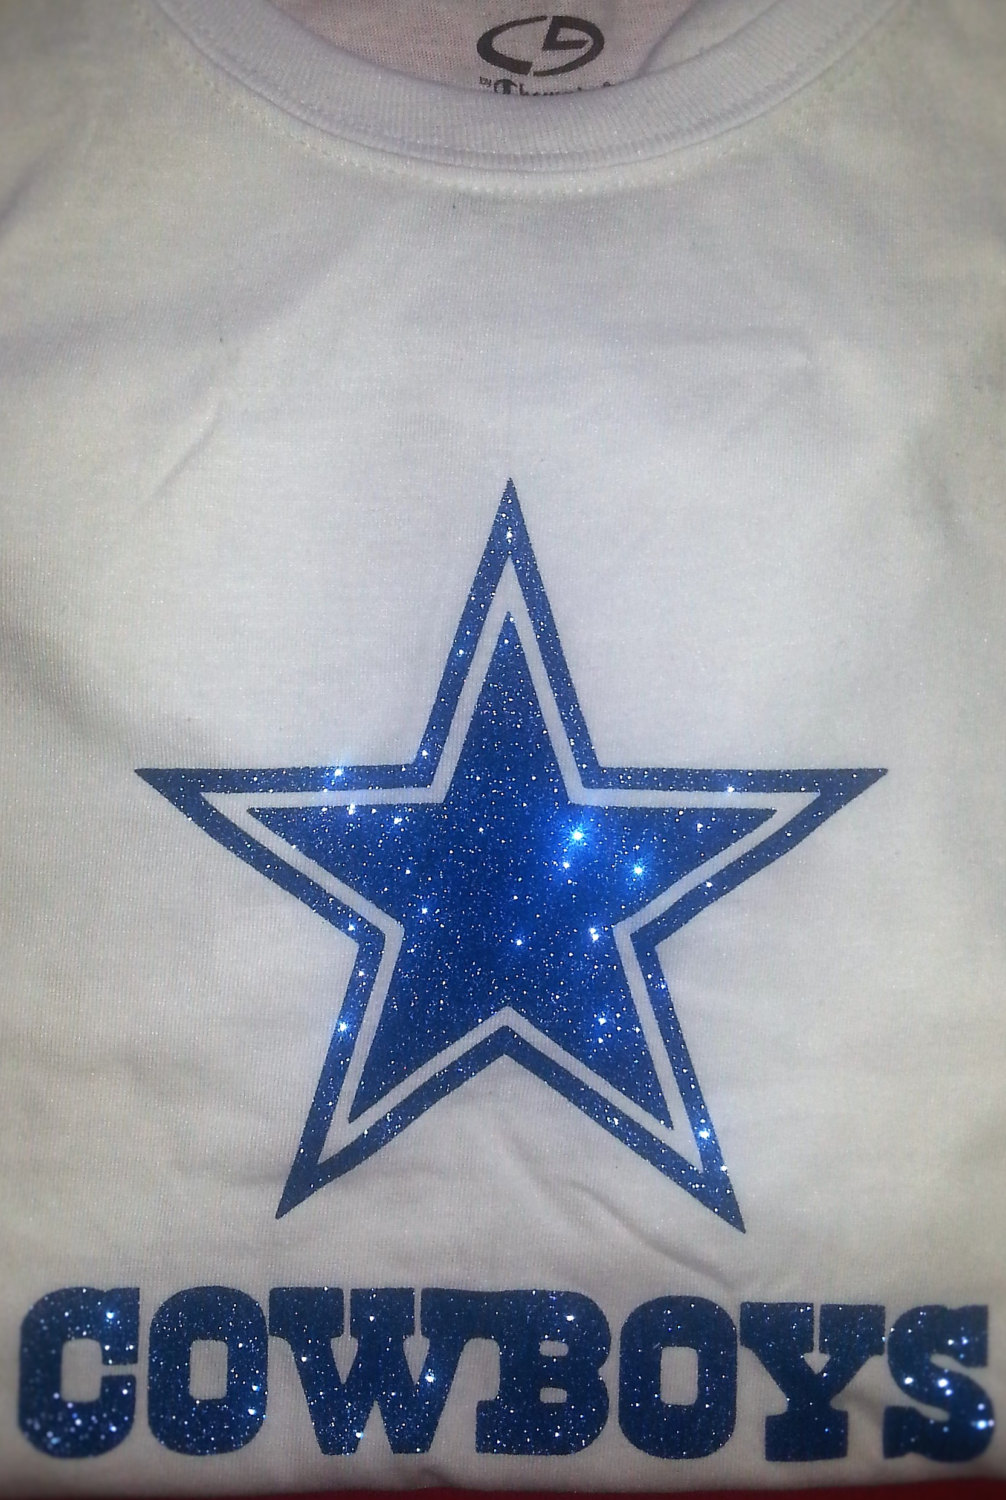 Dallas-Cowboys-Glitter-Bling-Logo-T-Shirt-Iron-on-Custom-Champions-Super-Bowl-Boys-Girls-by-SharisV-wallpaper-wp3804330